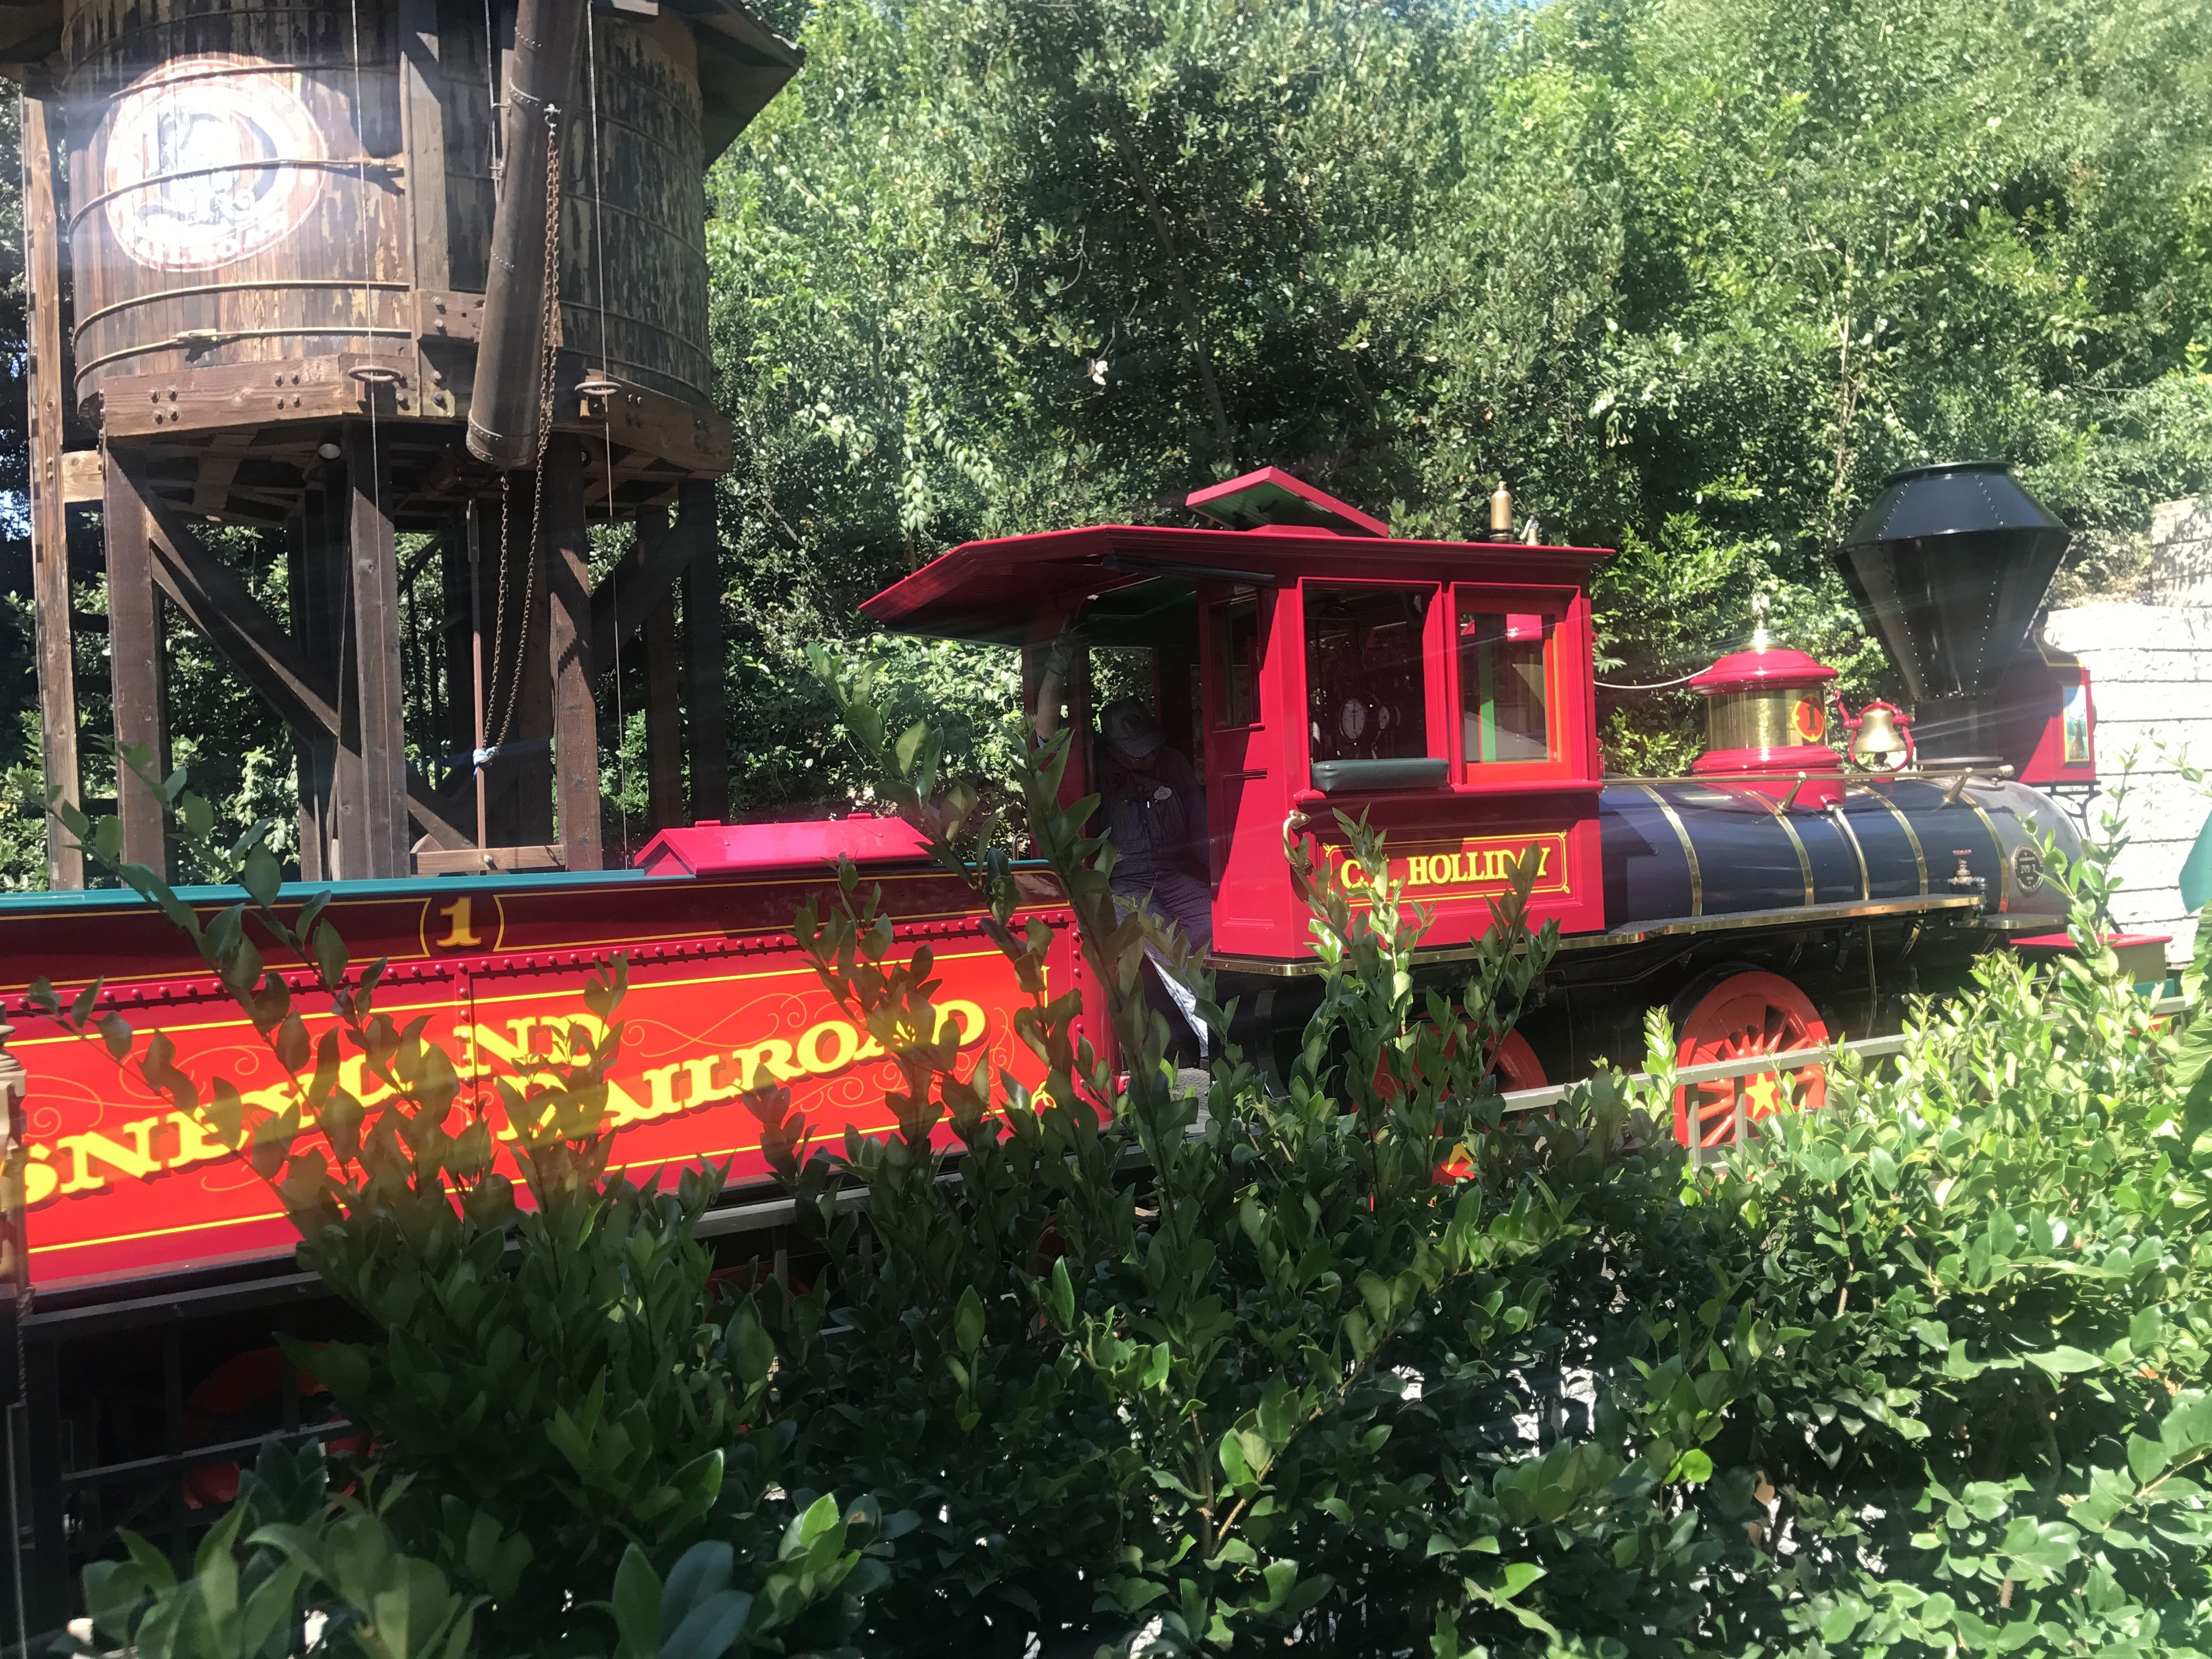 Pin By Mikeypv On Disneyland Loves Trains In 2020 House Styles Decor Home Decor